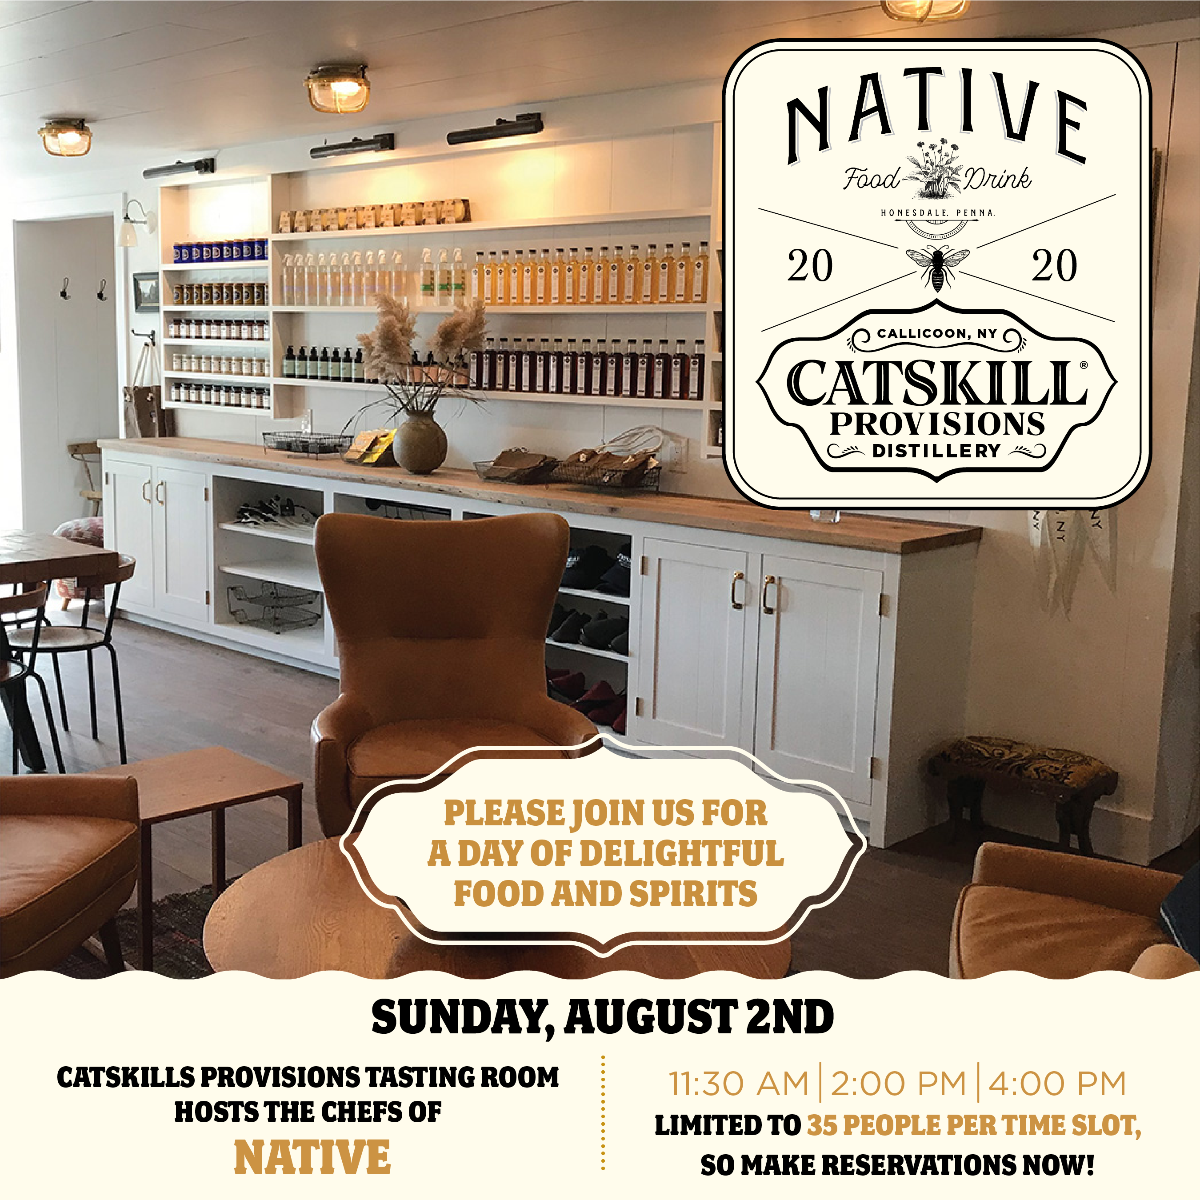 Catskill-callicoon-and-Native